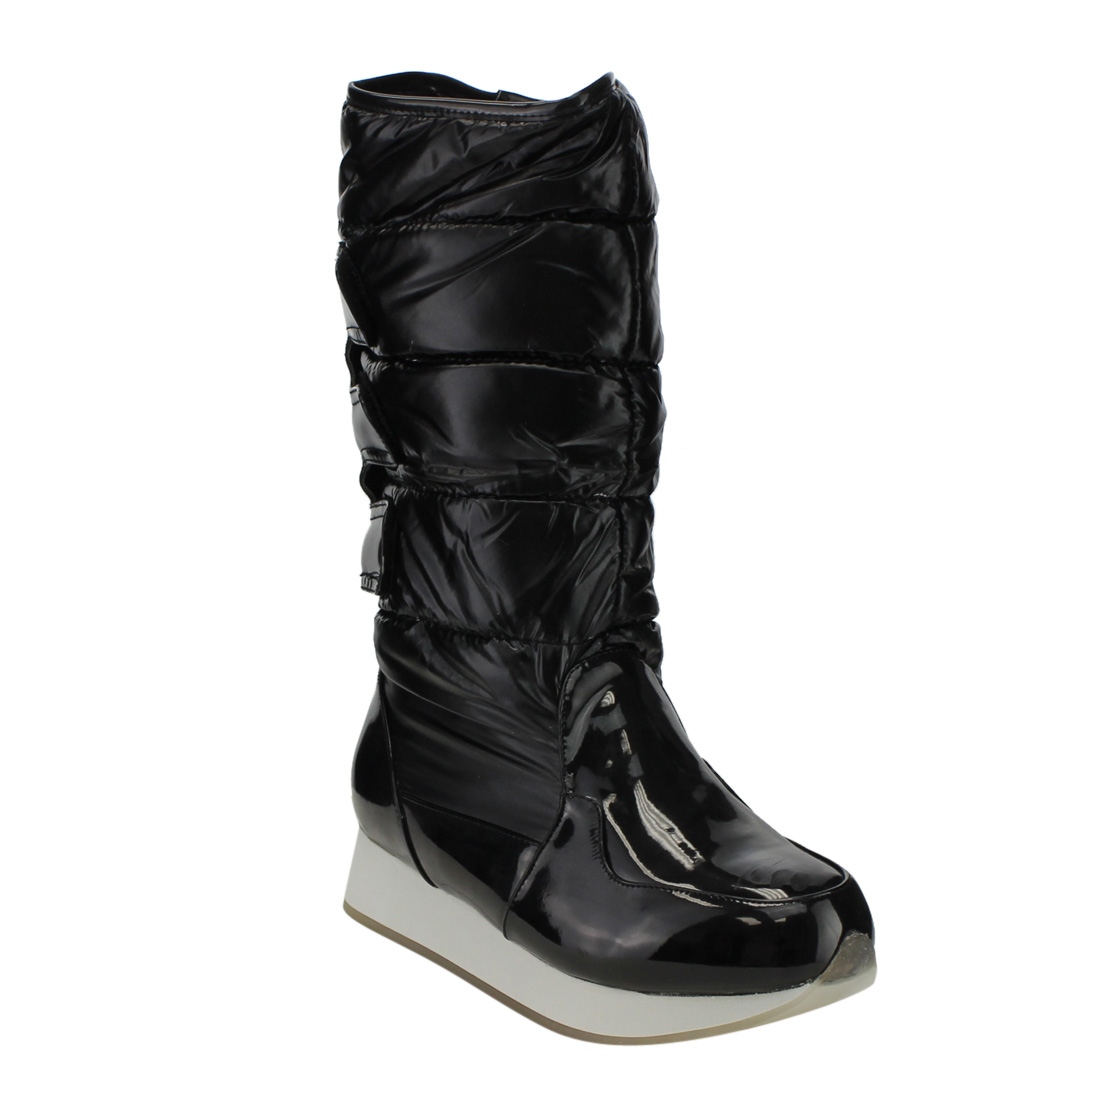 Chase & Chloe ED68 Women's Stitching Under Knee High Low Heel Snow Boots by